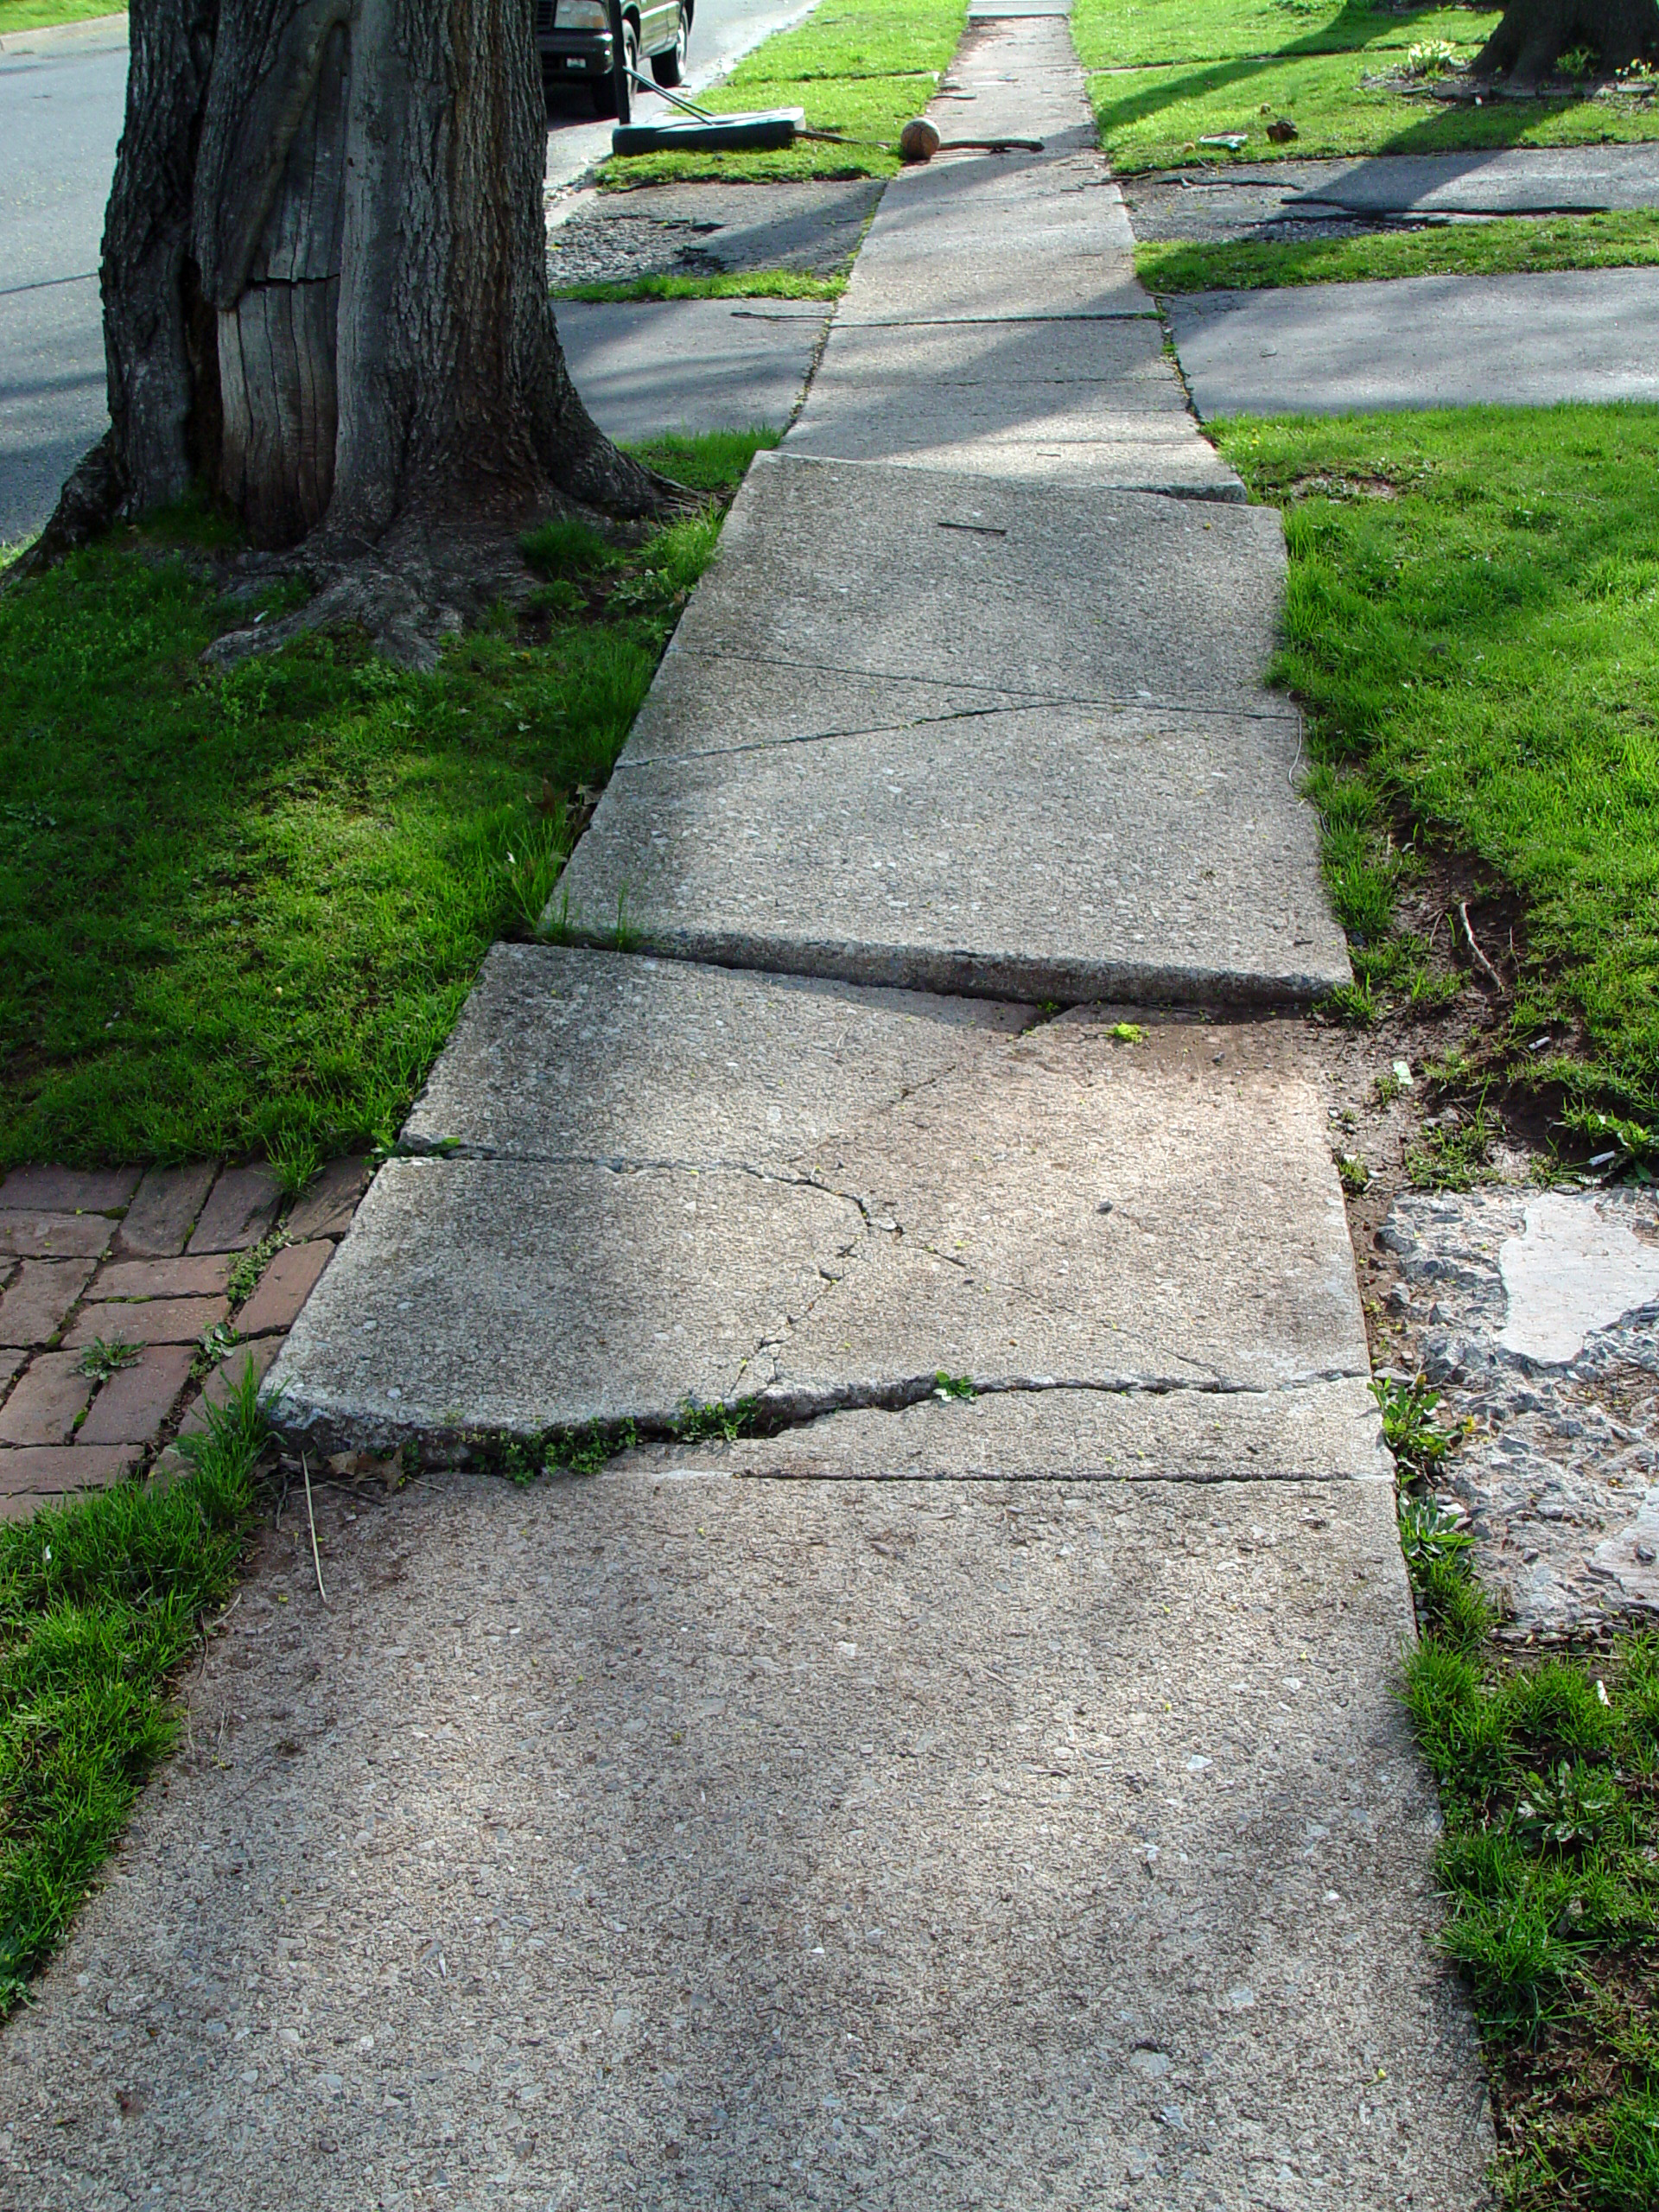 Sidewalk Trip and Fall . . . Who is at Fault? Who Pays?